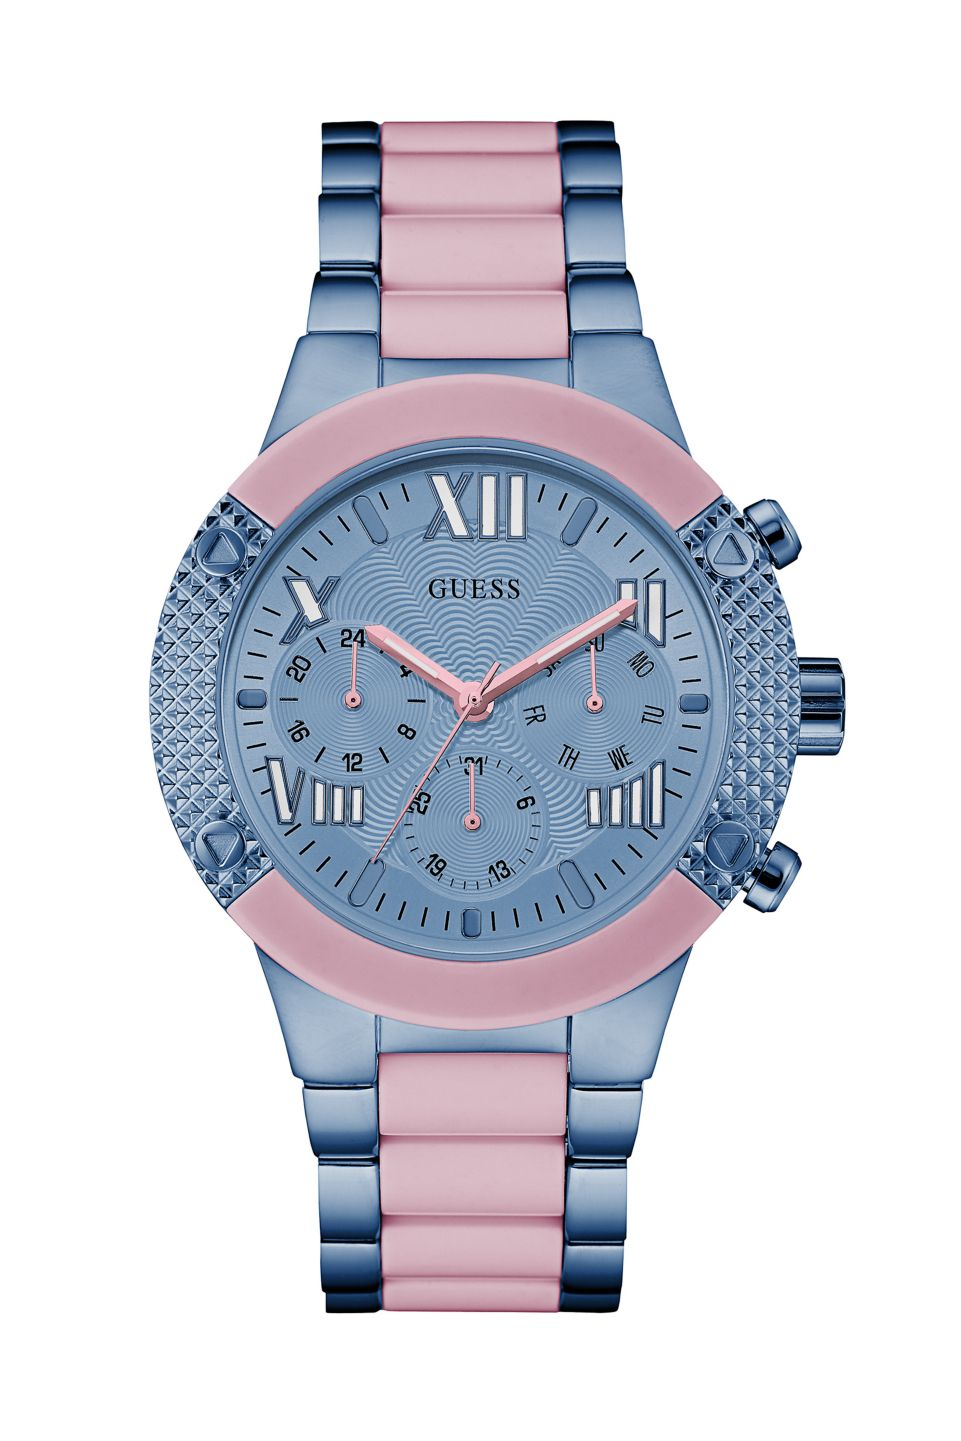 cd7367433b47e Pink and Blue Show-Stopping Sport Watch   GUESS.com   GUESS   The ...